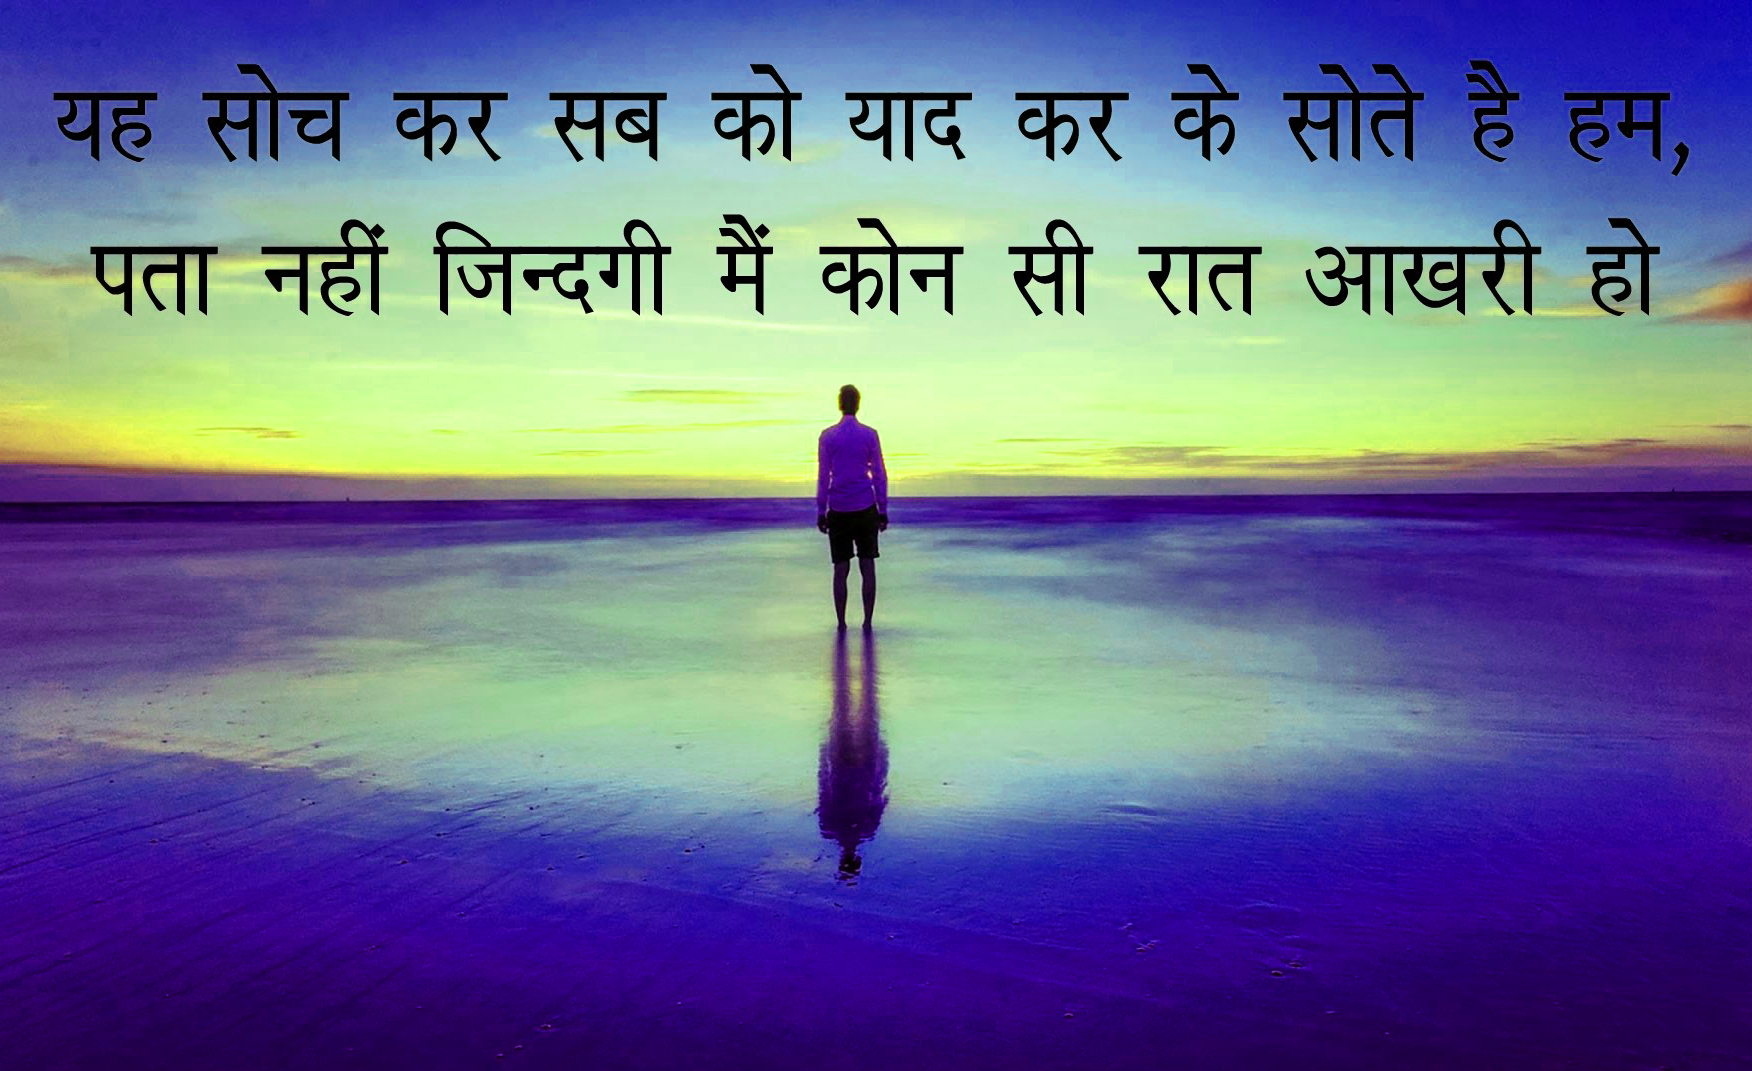 उर्दू शायरी Best Hindi Shayari Photo Pictures Wallpaper Download